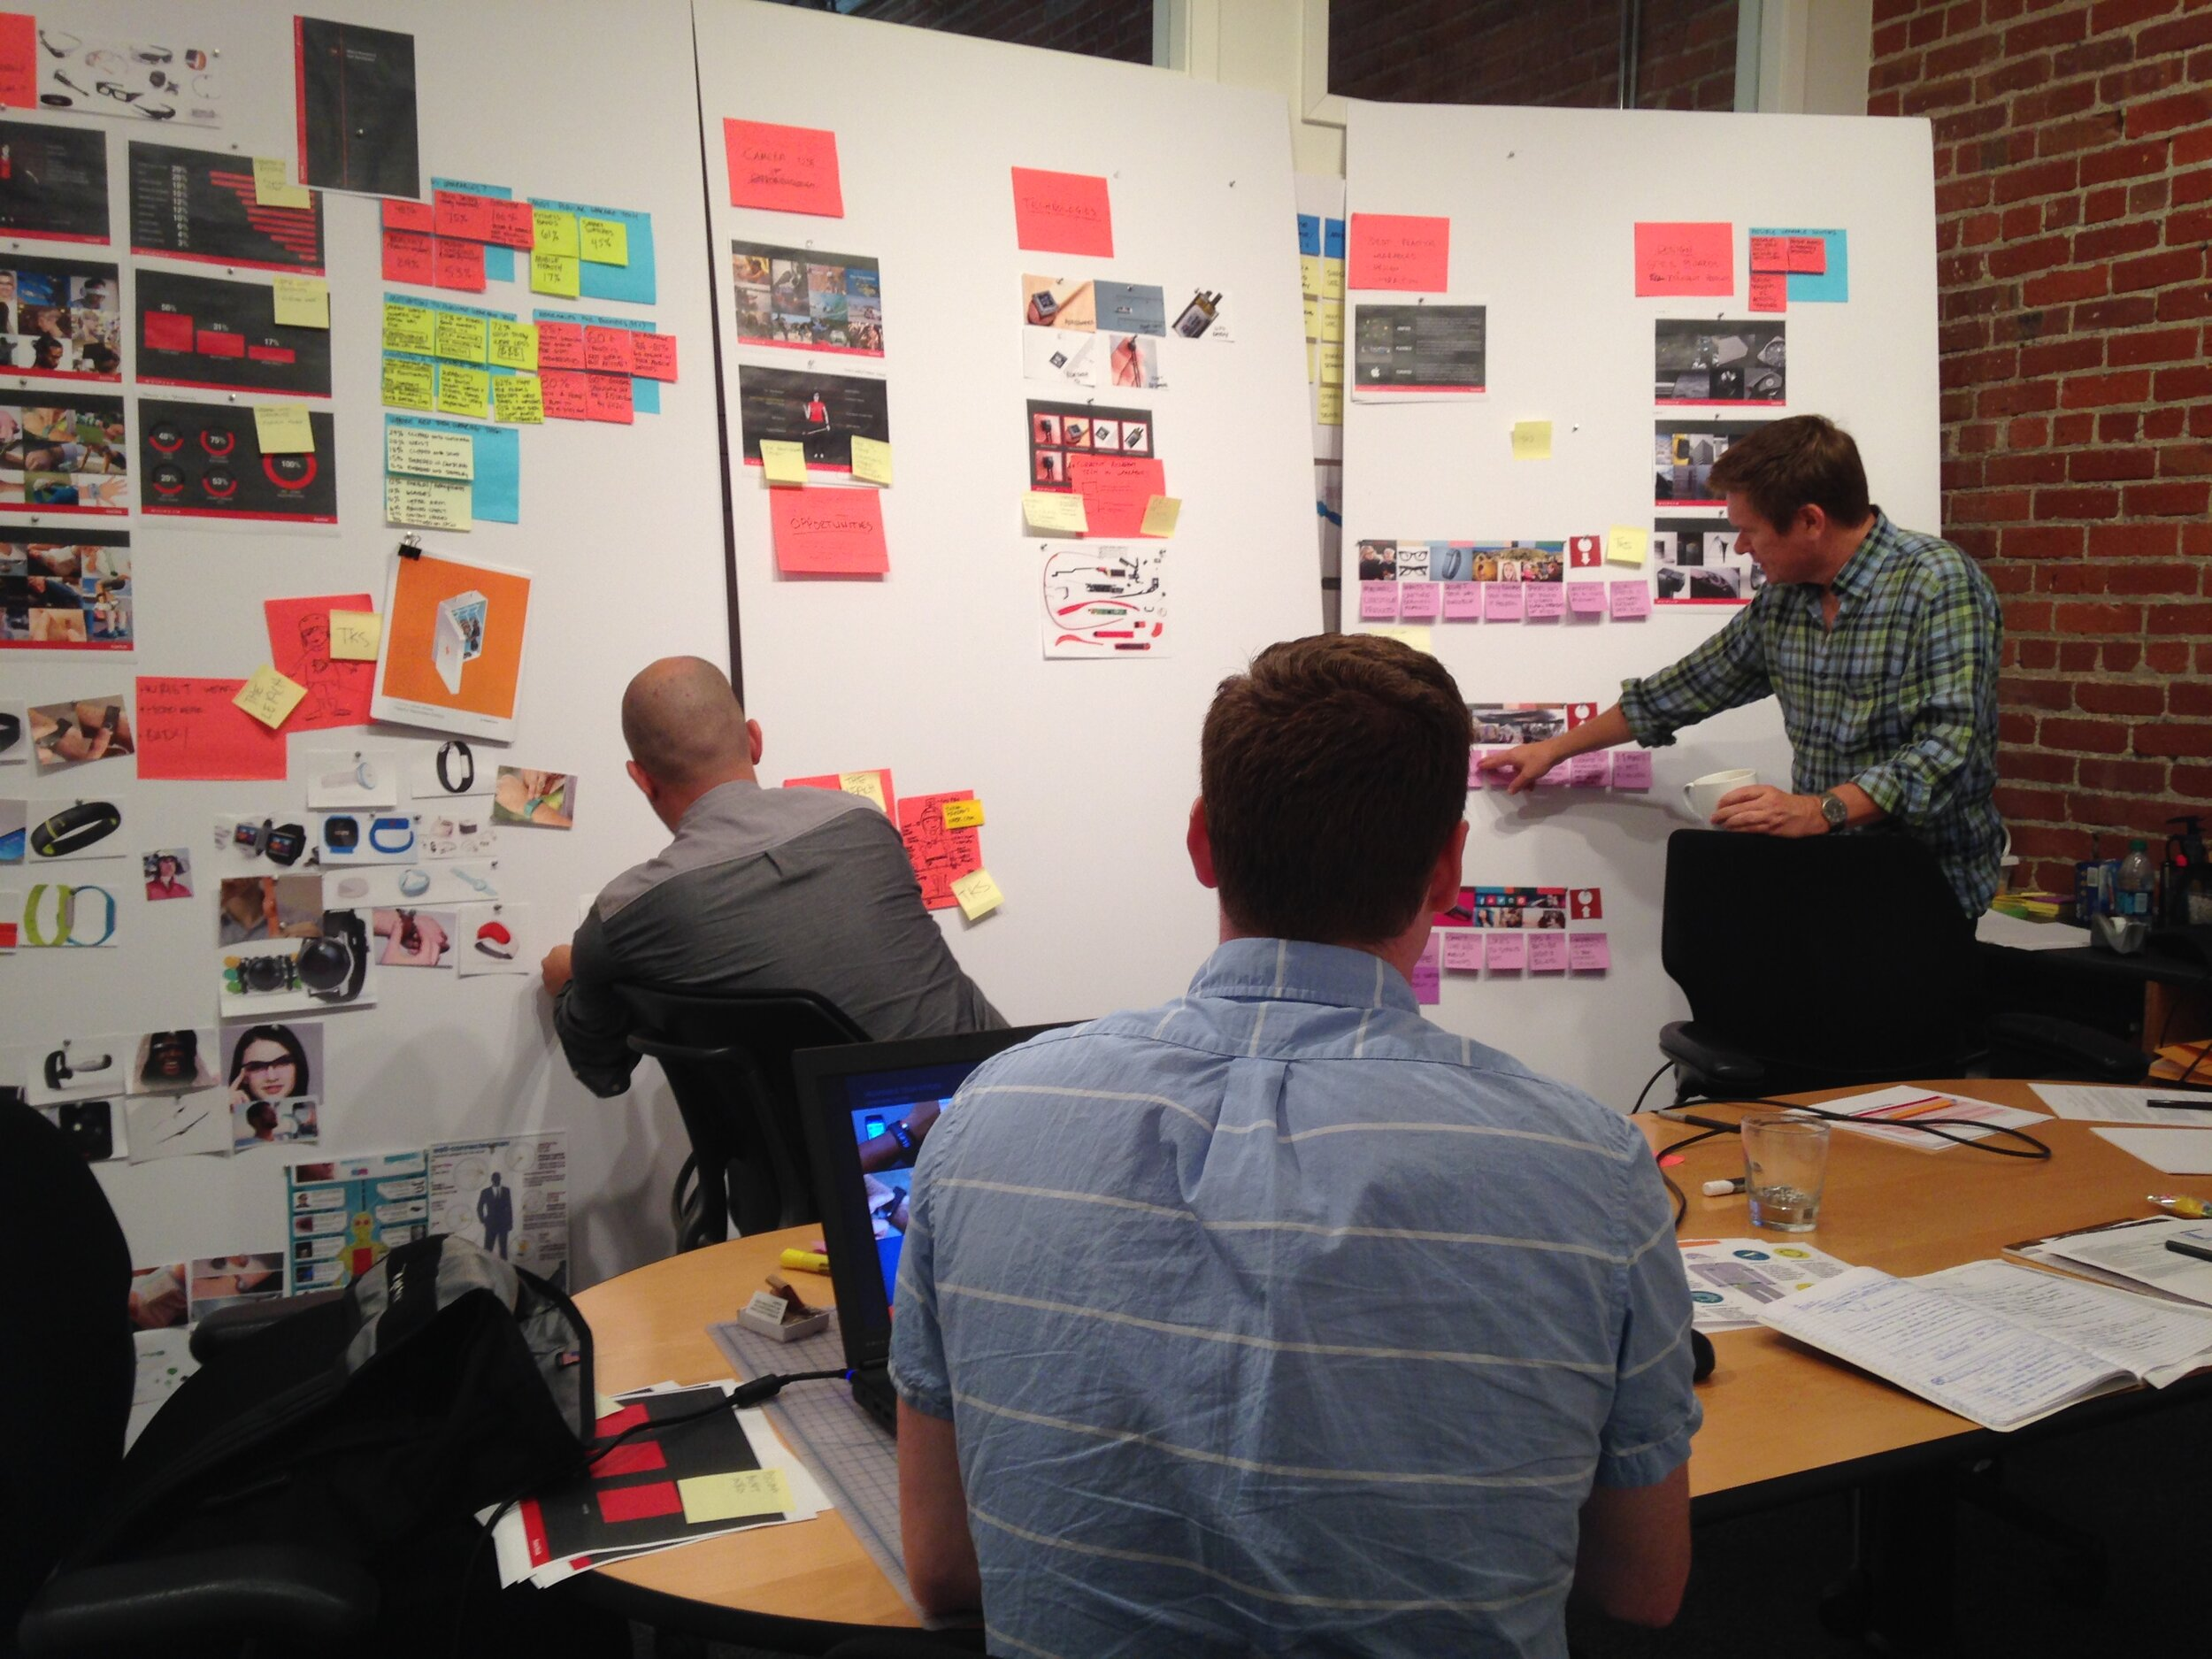 Methods: Market research, observational research & interviews, low fidelity prototyping. -